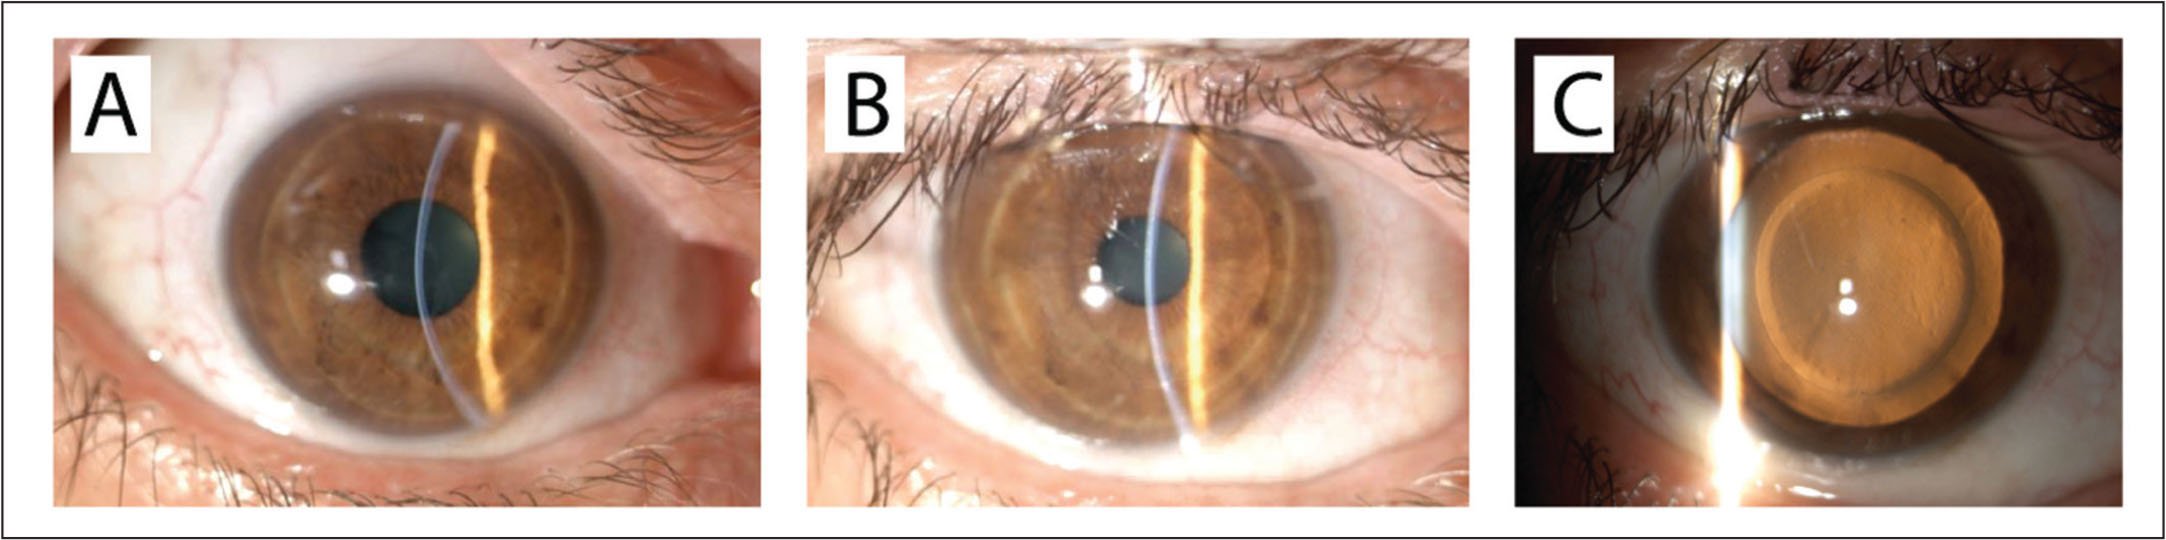 Slit-lamp photographs showing the (A) preoperative and (B and C) postoperative features of the cornea after stromal lenticule addition surgery. (B) The cornea appears clear with a transparent interface at 1 month after surgery and the intrastromal lenticule is barely visible. (C) Transillumination slit-lamp photograph highlights the lenticule profile.